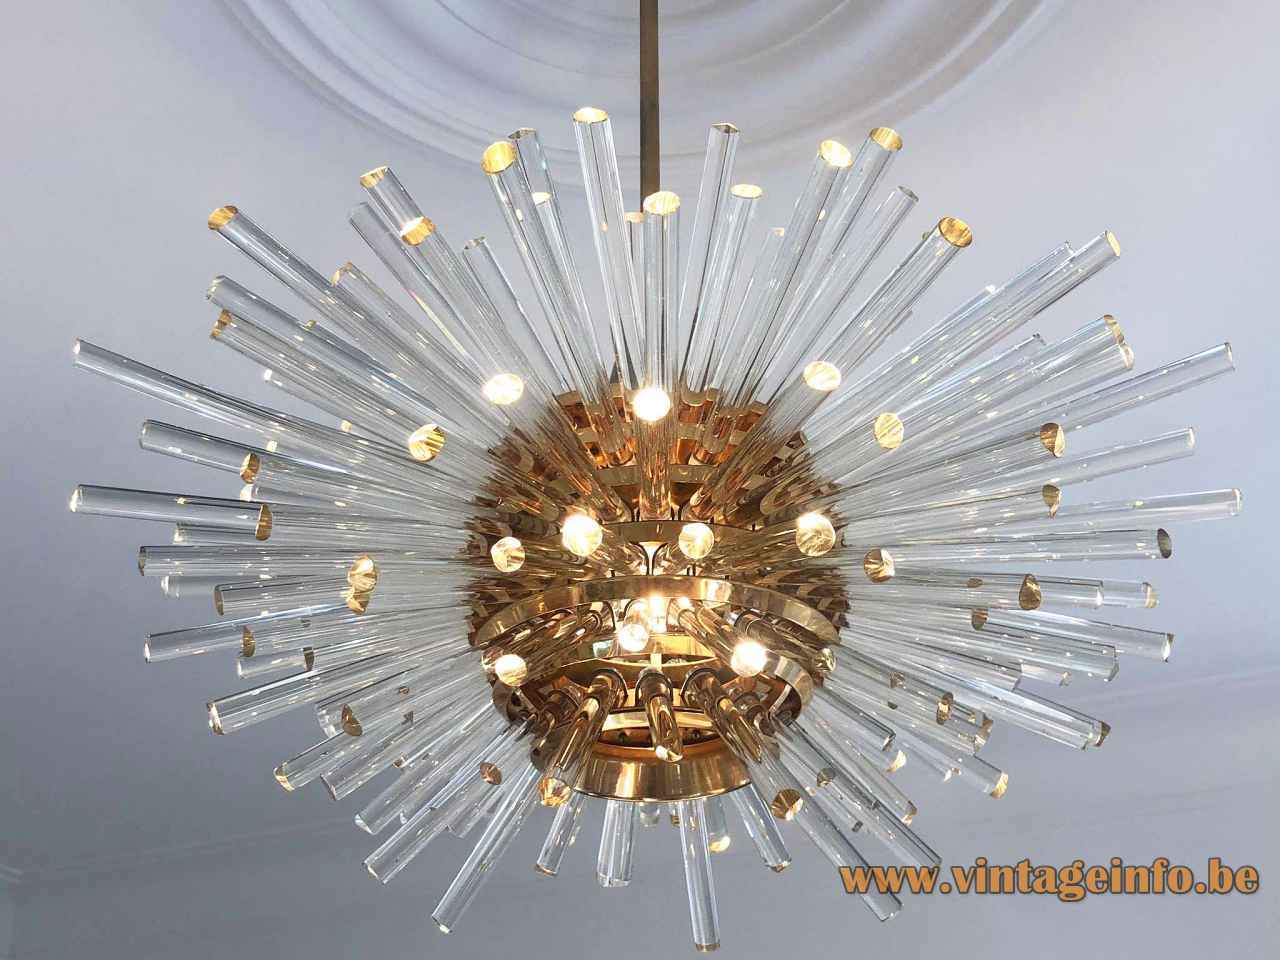 1960s Bakalowits Miracle chandelier model 3317 brass globe lampshade sputnik glass rods sunburst lamp Austria